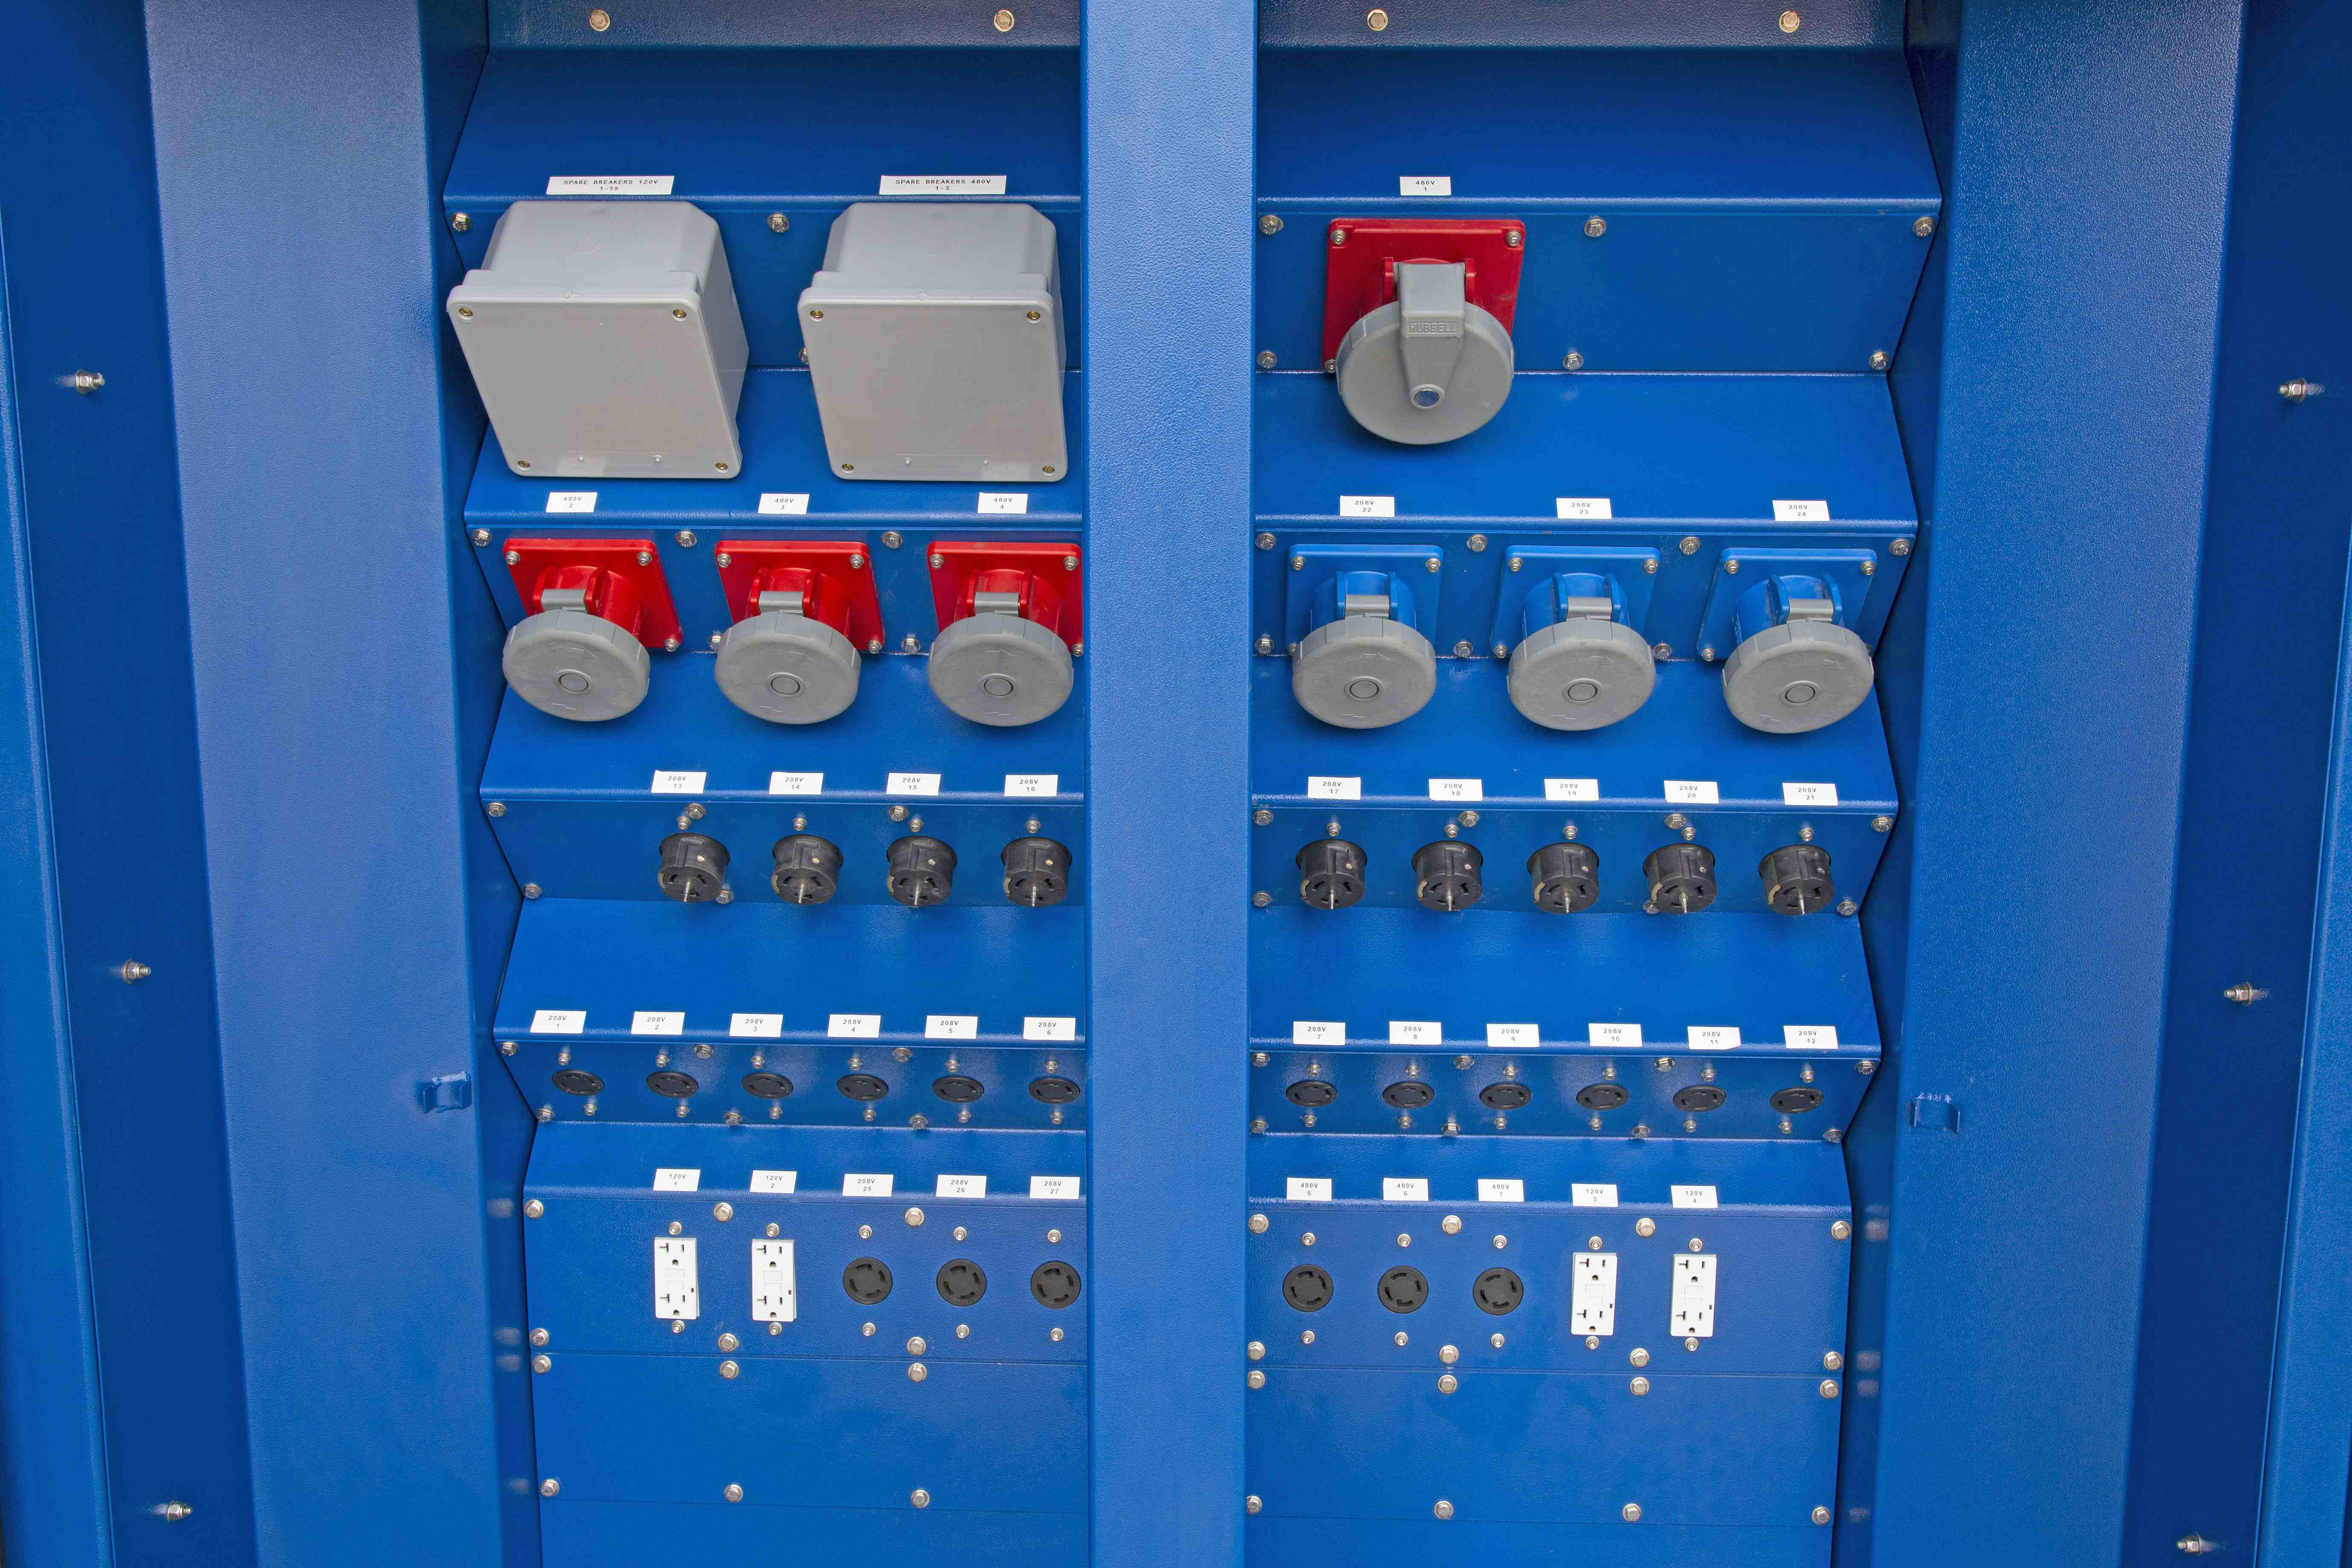 75 Kva Power Distribution 480d To 208y 120 3ph 5 480v 2 208v Transformer Wiring Diagram Free Picture Hi Res Image 10 System 75kva